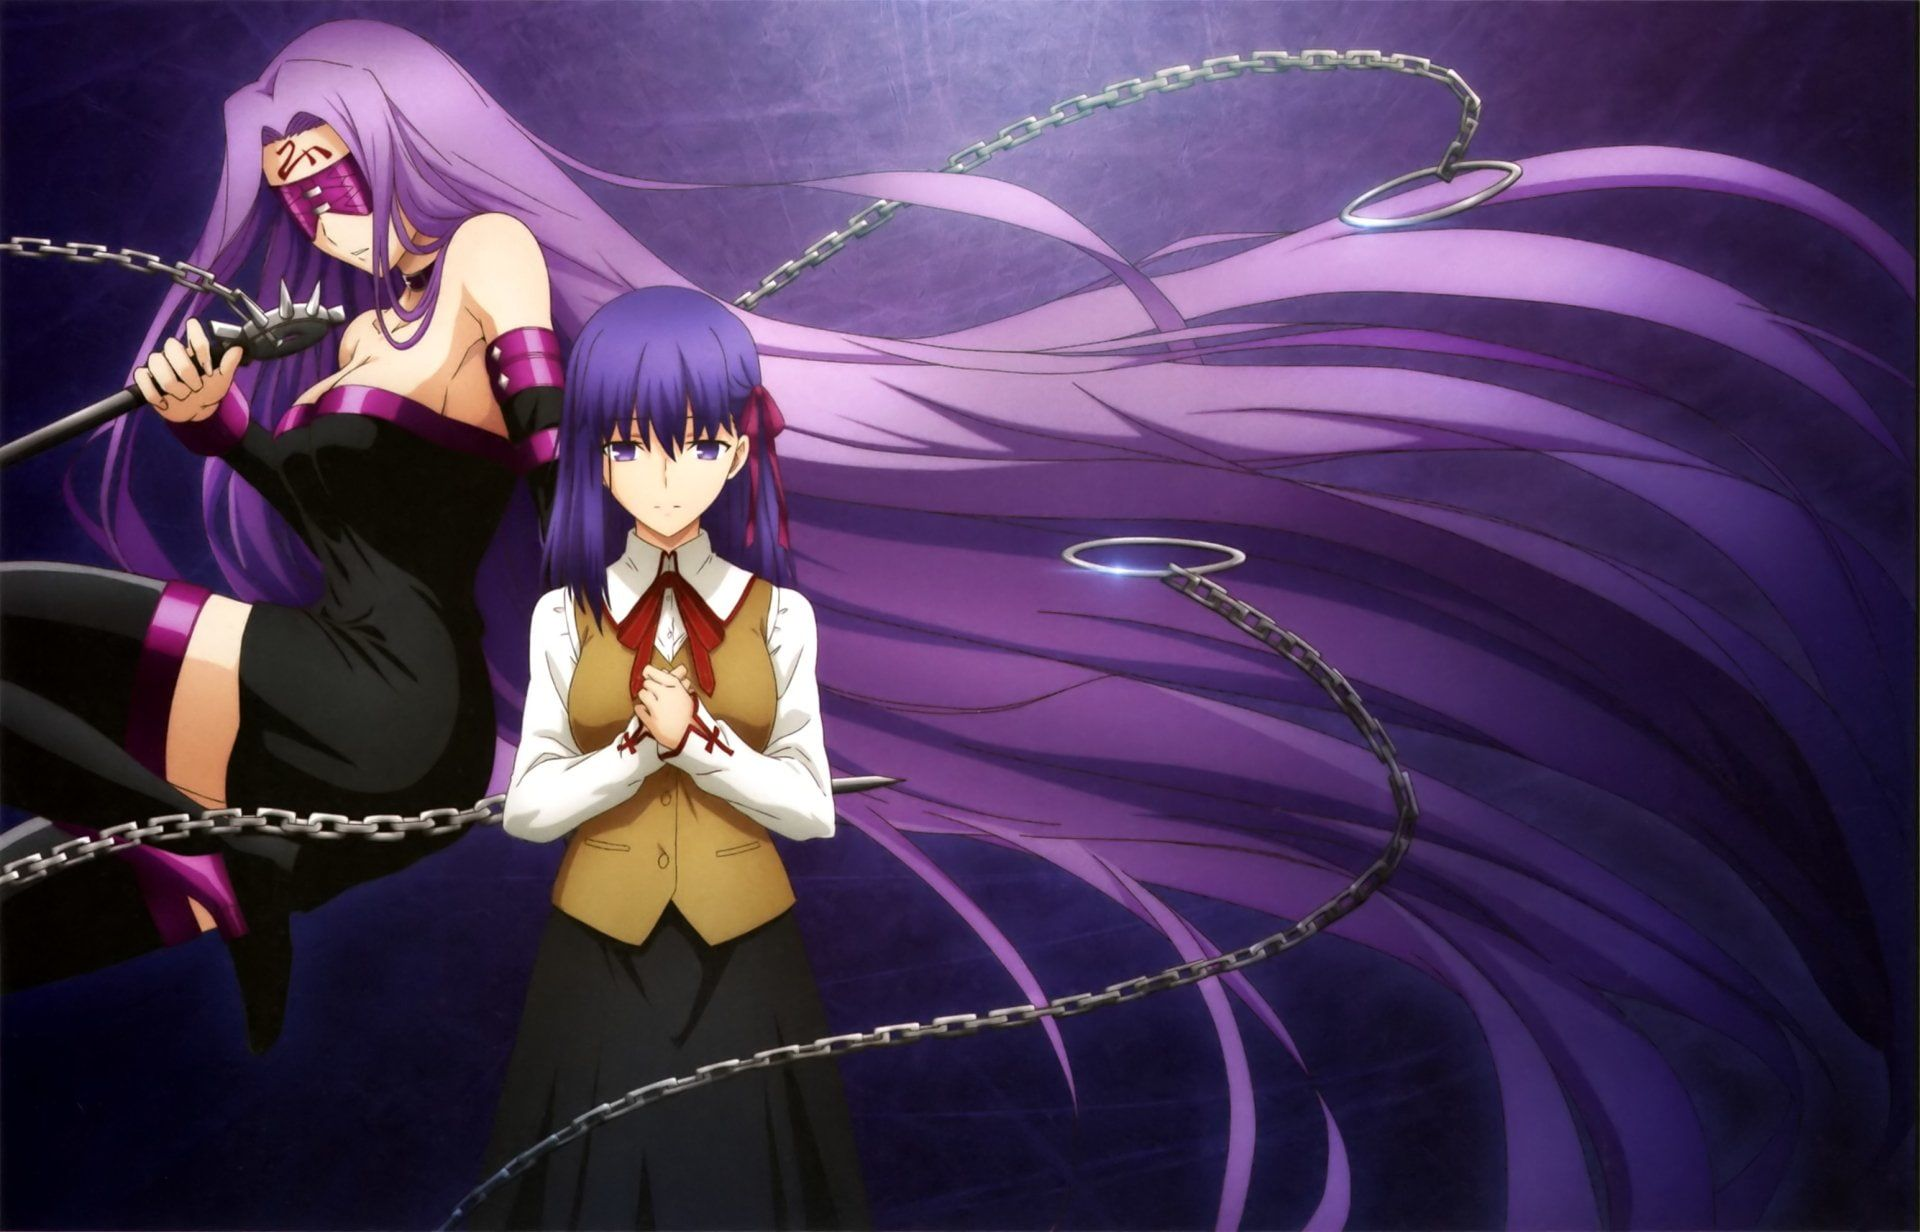 Fate Series Fate Stay Night Movie Heaven S Feel Medusa Fate Grand Order Rider Fate Stay Night Fate Stay Night Movie Fate Stay Night Sakura Fate Stay Night